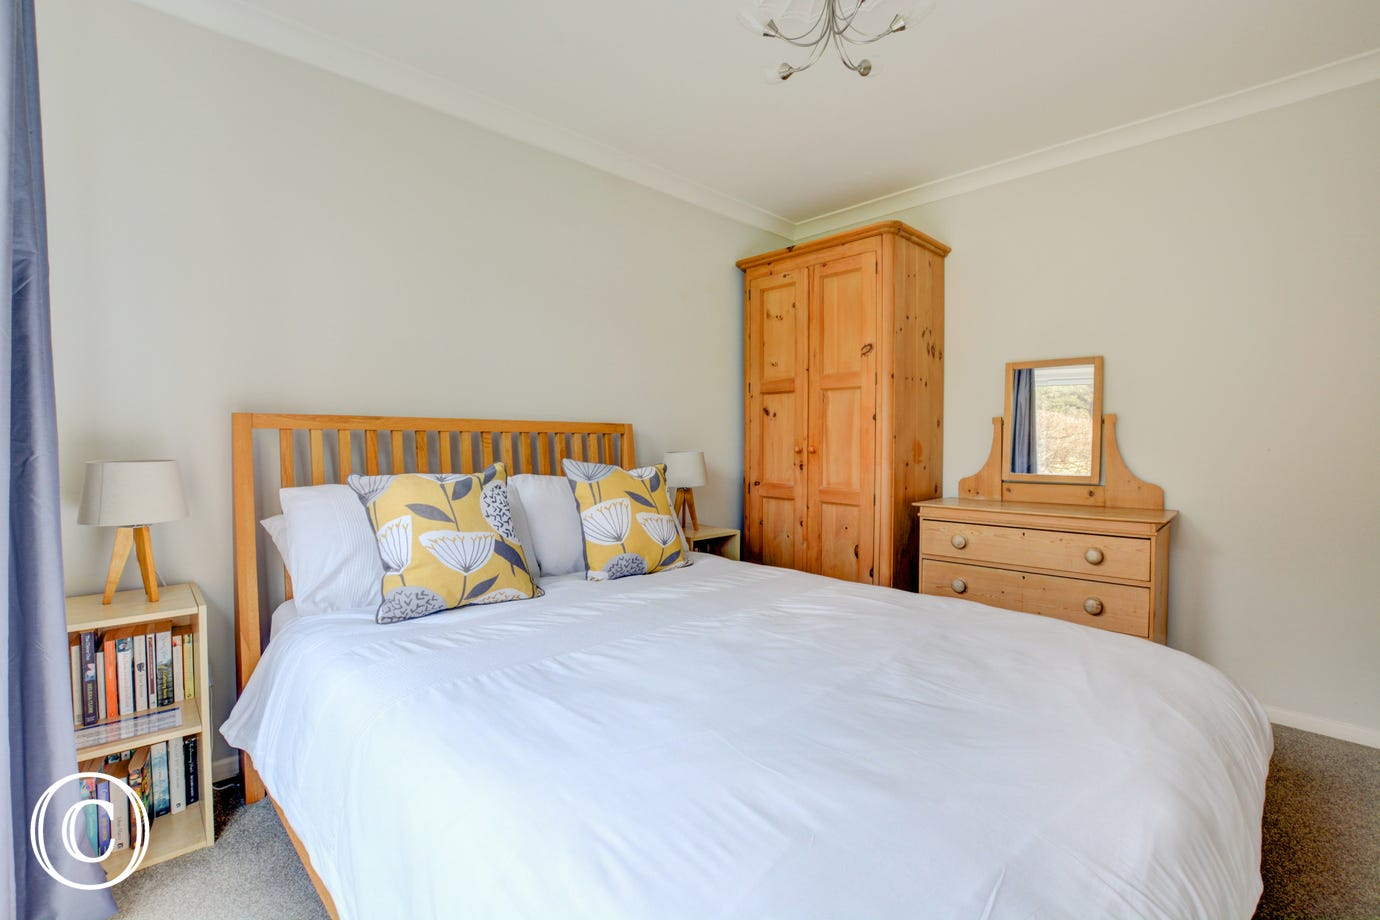 Double bedroom with double bed, wardrobe and chest of drawers